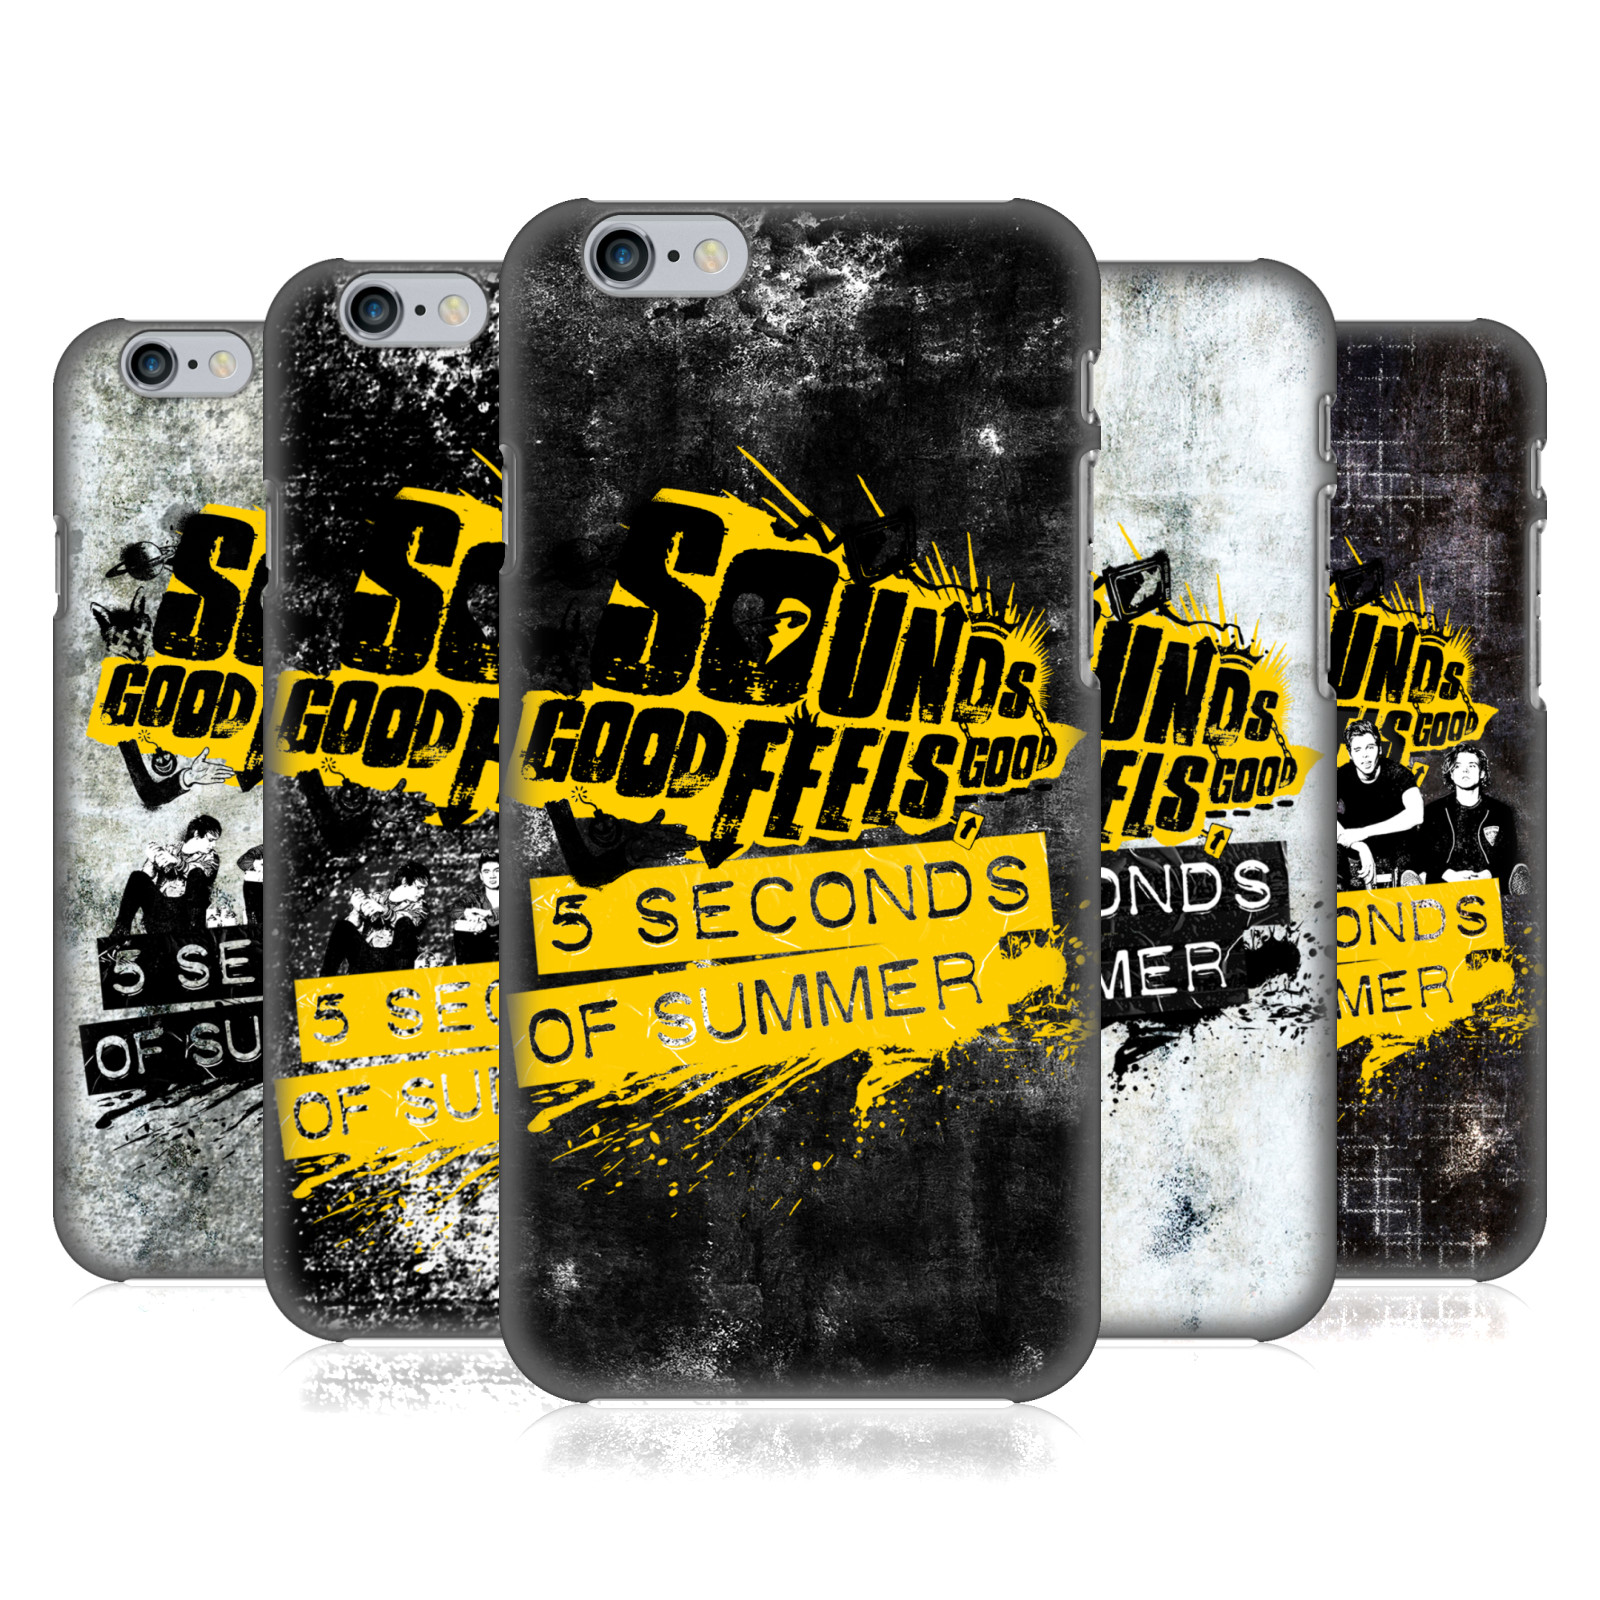 5 Seconds of Summer 5SOS Phone and Tablet cases